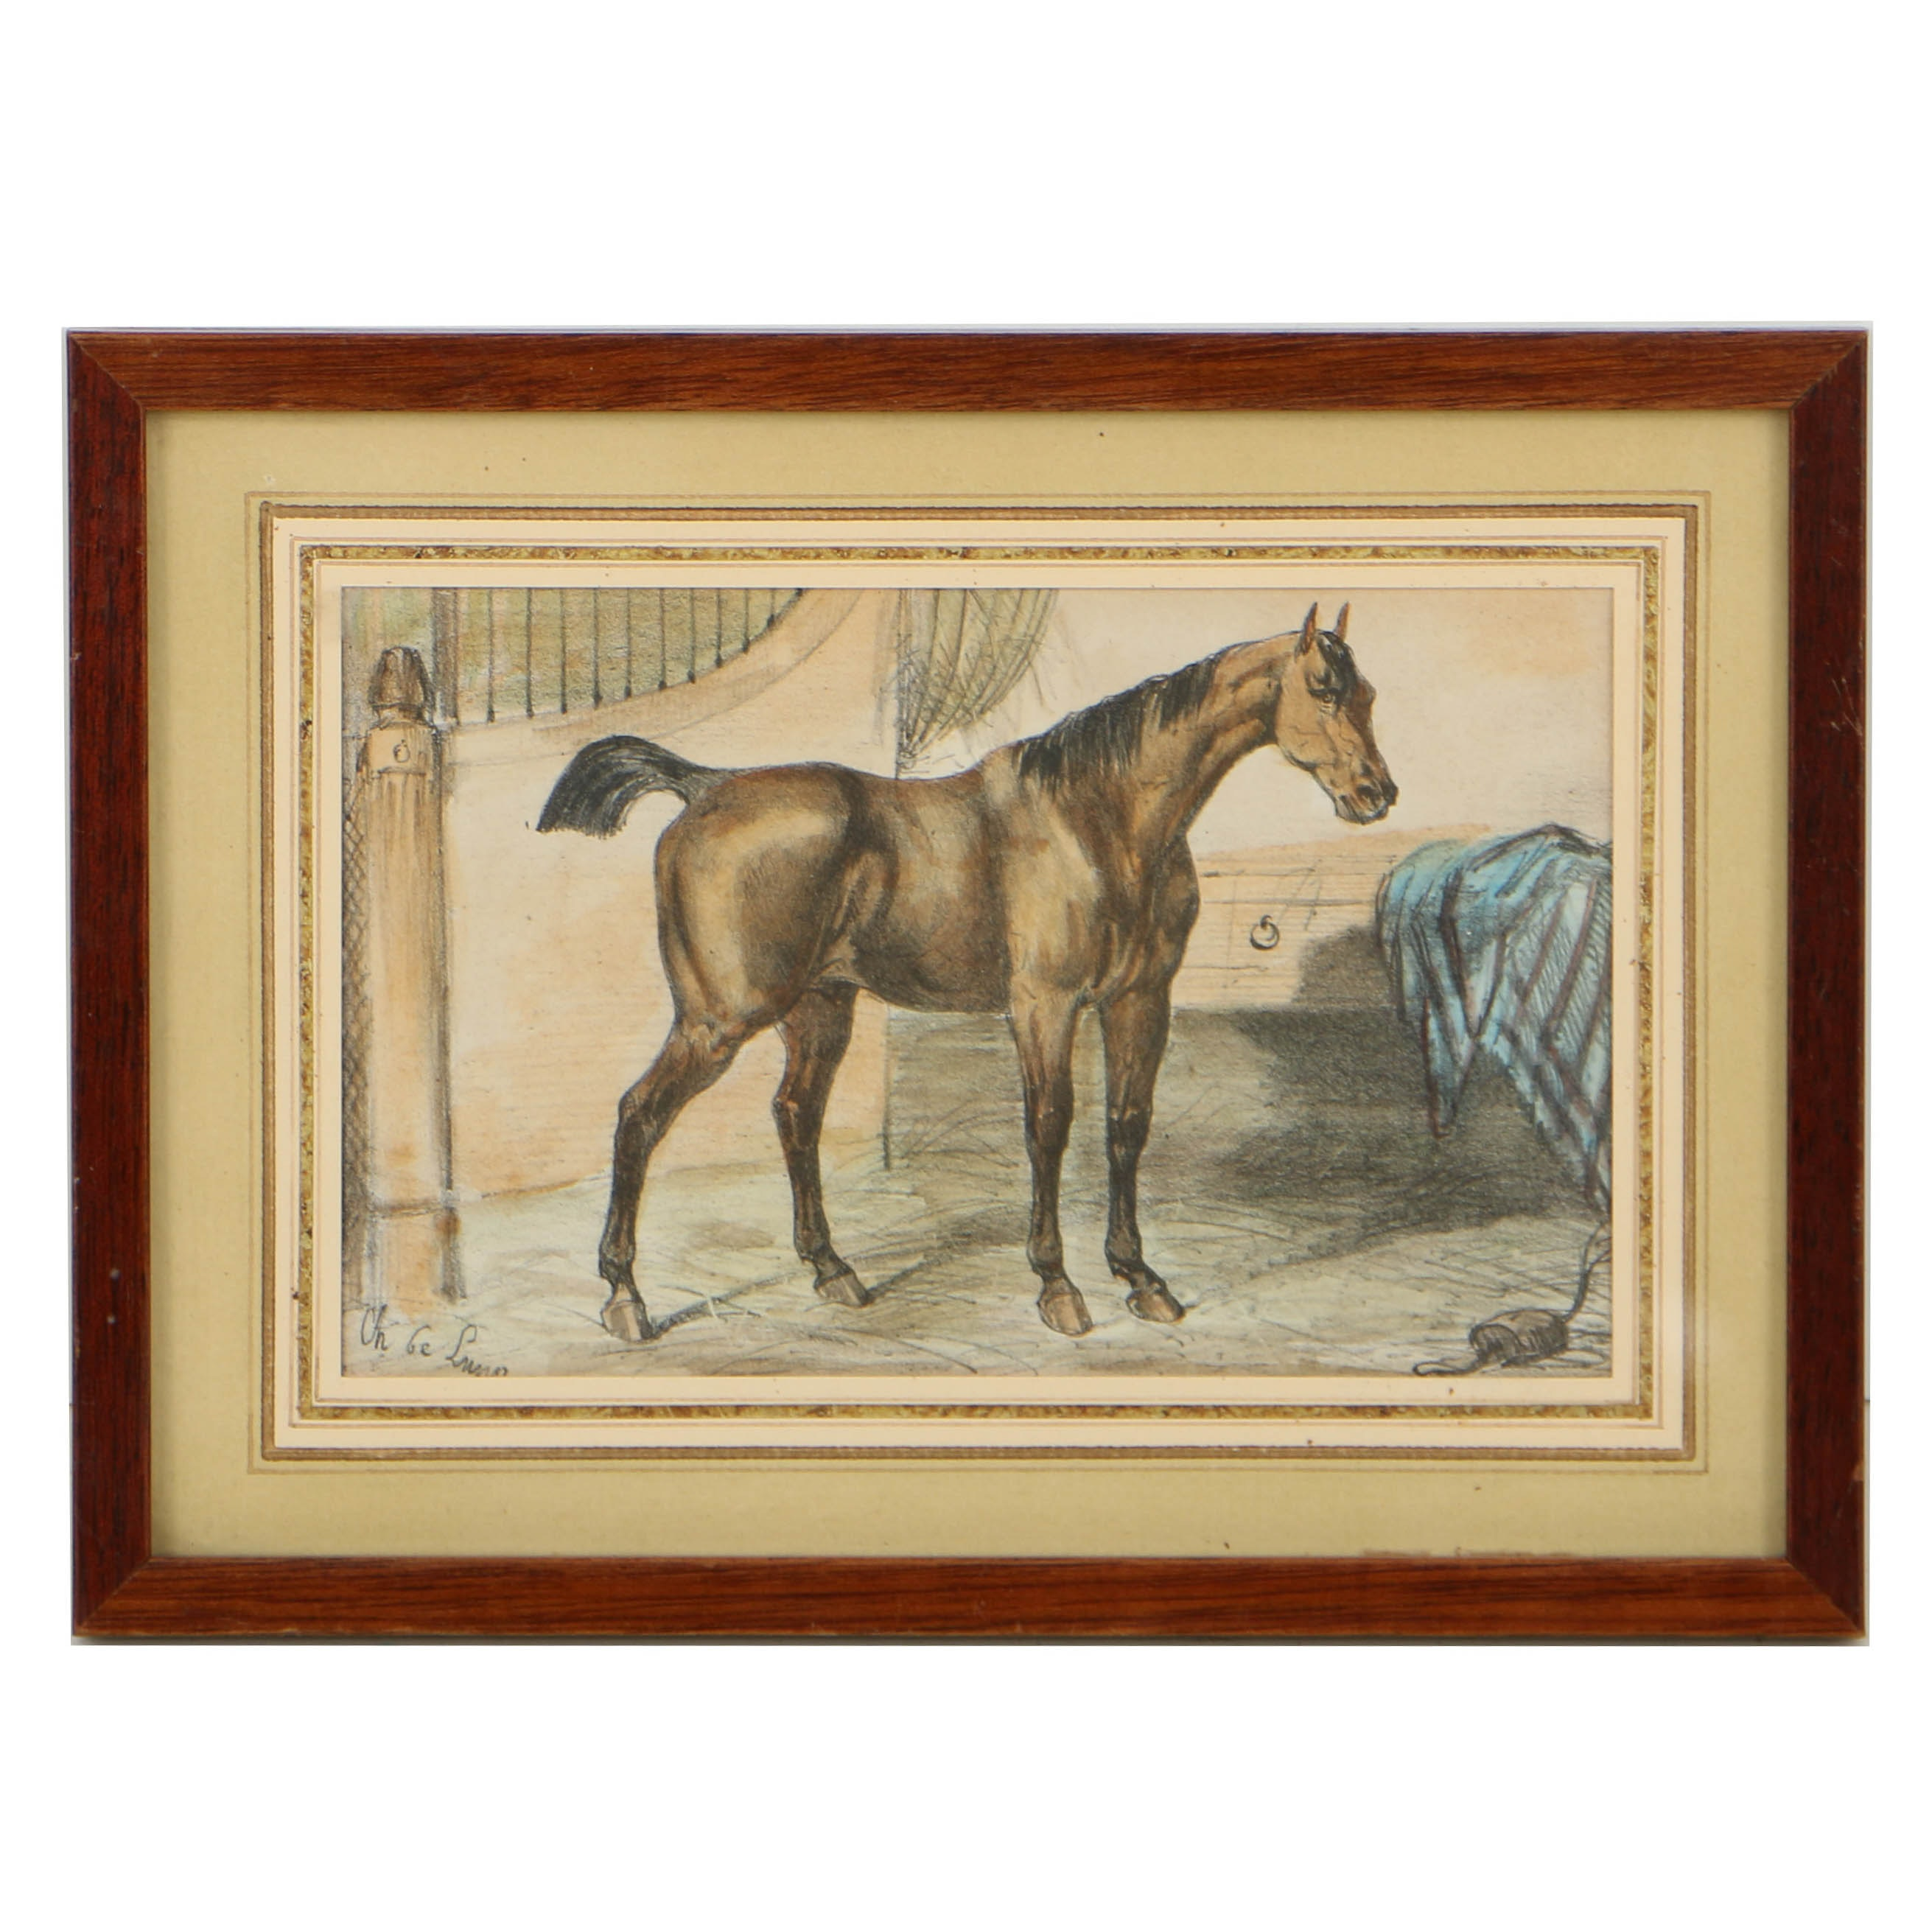 Hand-Colored 19th-Century Lithograph on Paper of Equestrian Composition